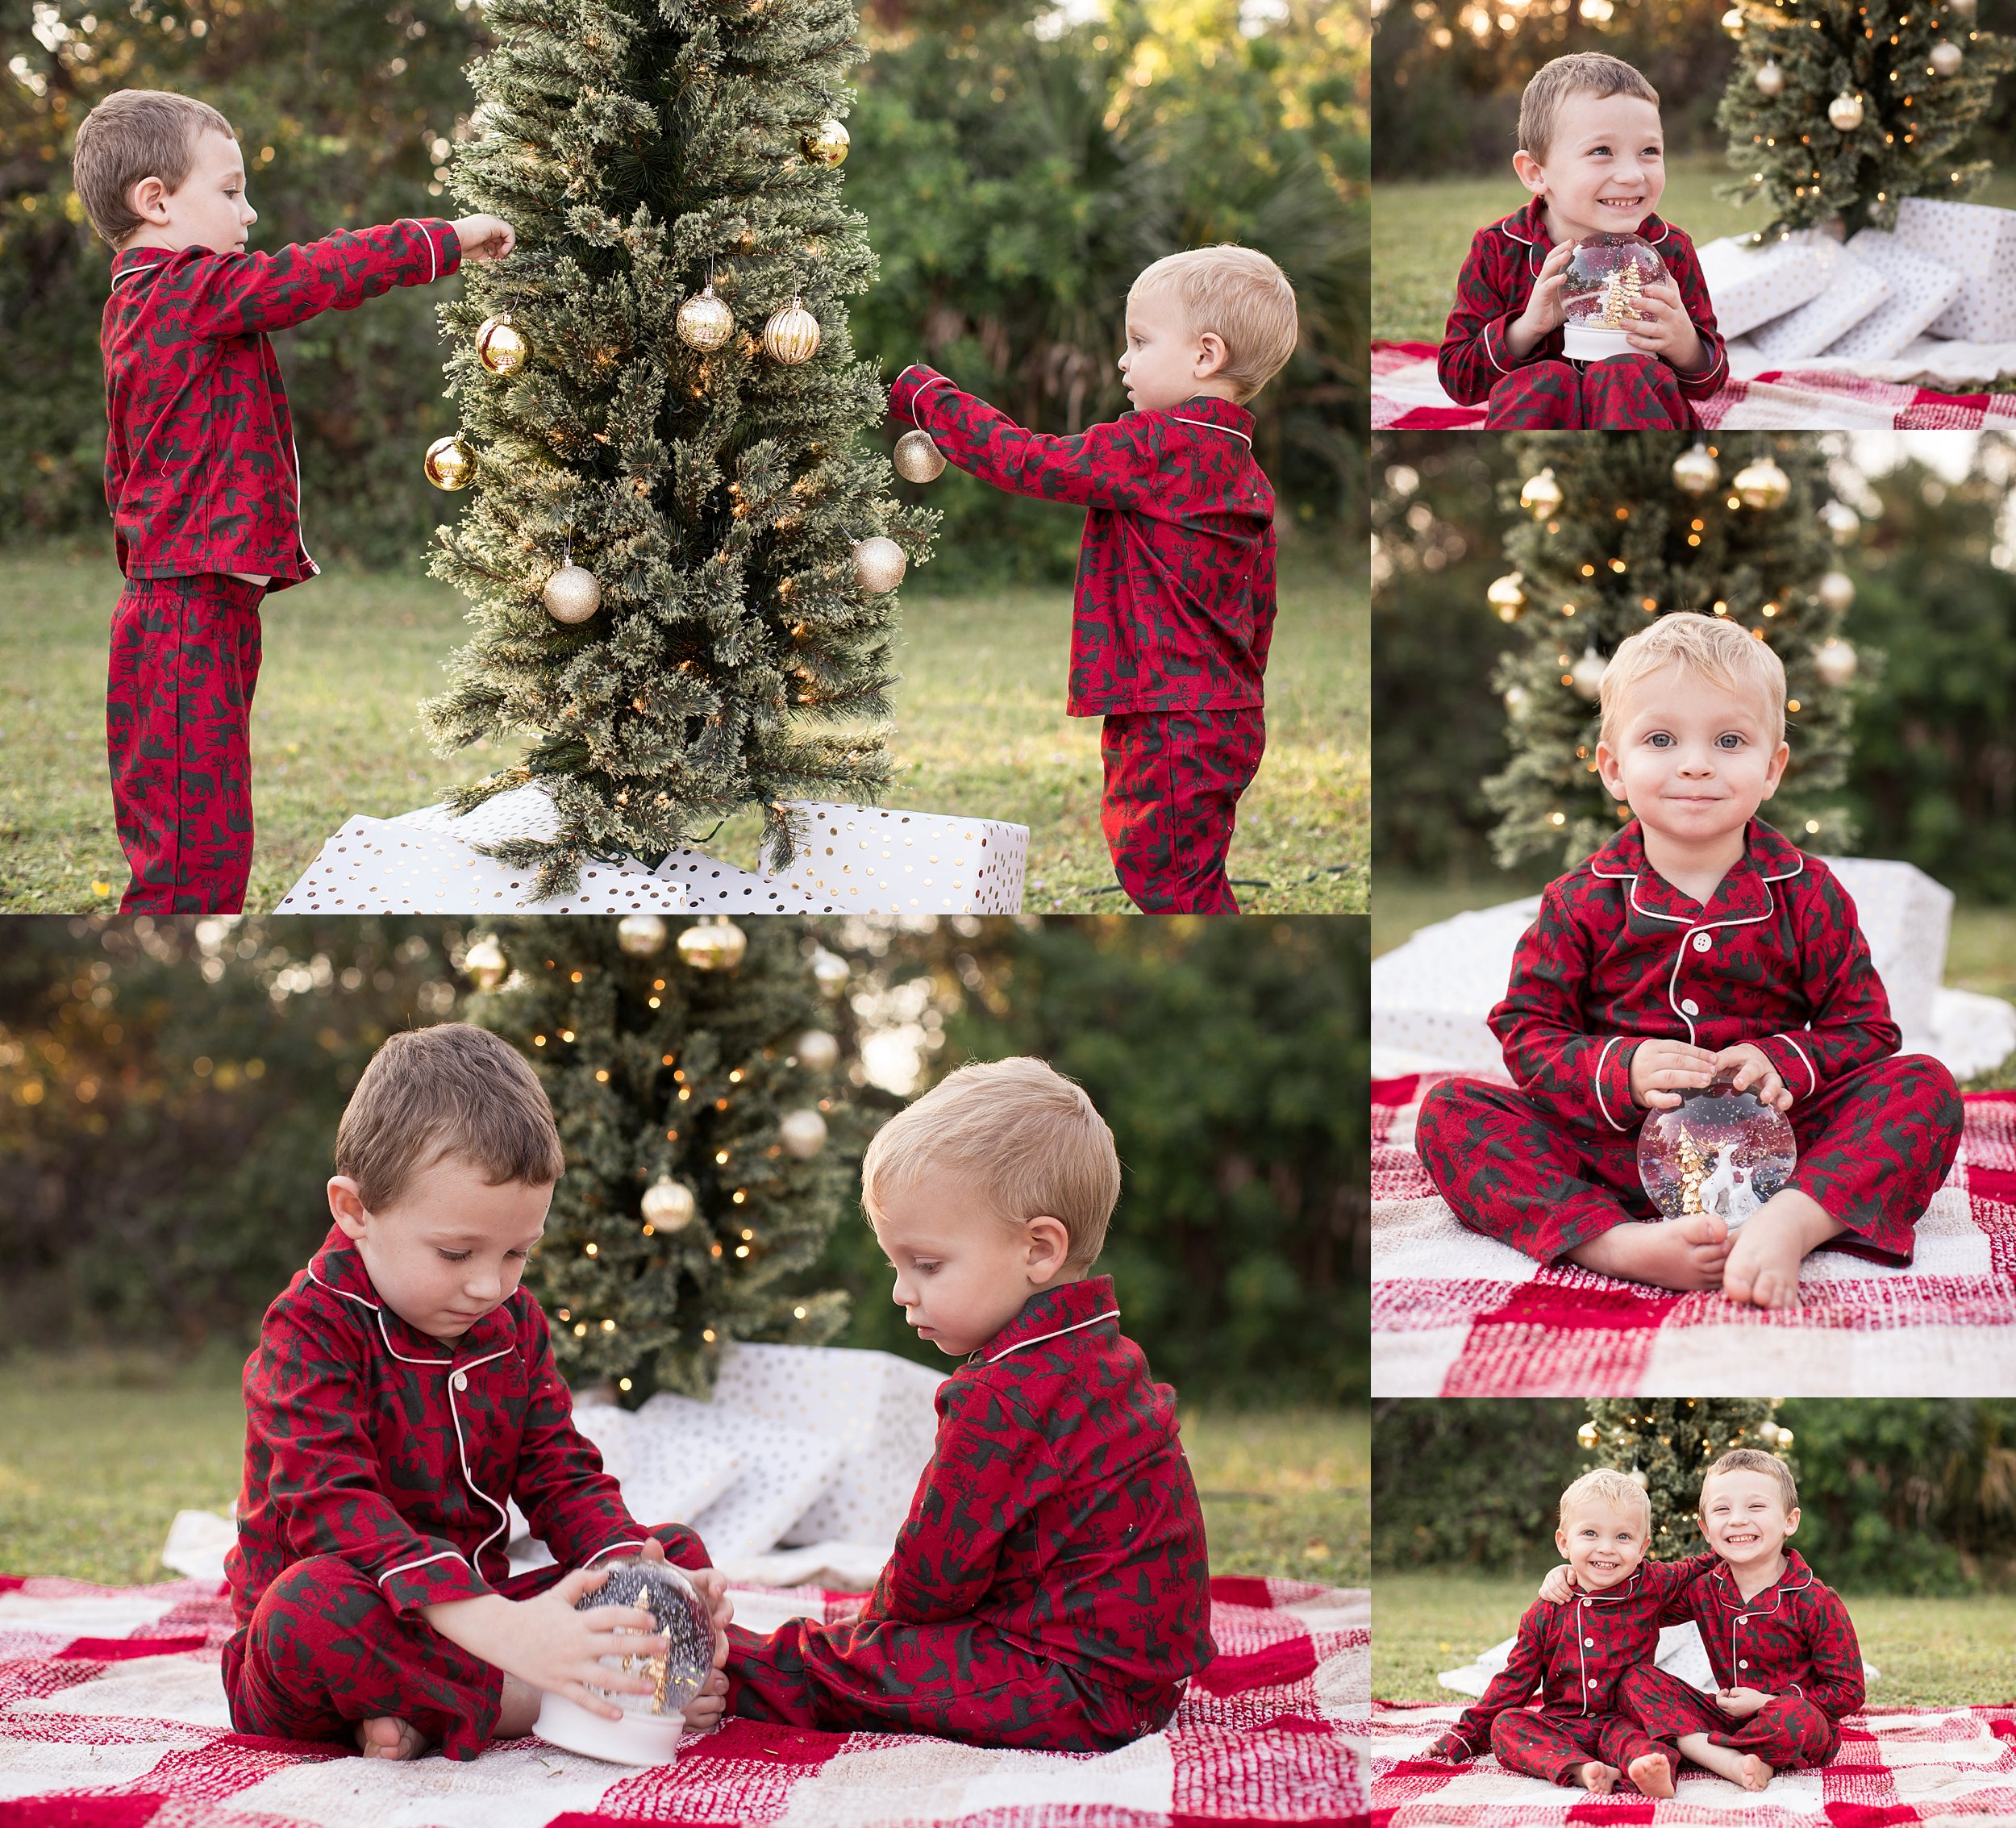 2016 FAMILY HOLIDAY PHOTO SESSIONS | CHRISTMAS TREE AT THE PARK | SEBASTIAN, FLORIDA PHOTOGRAPHER